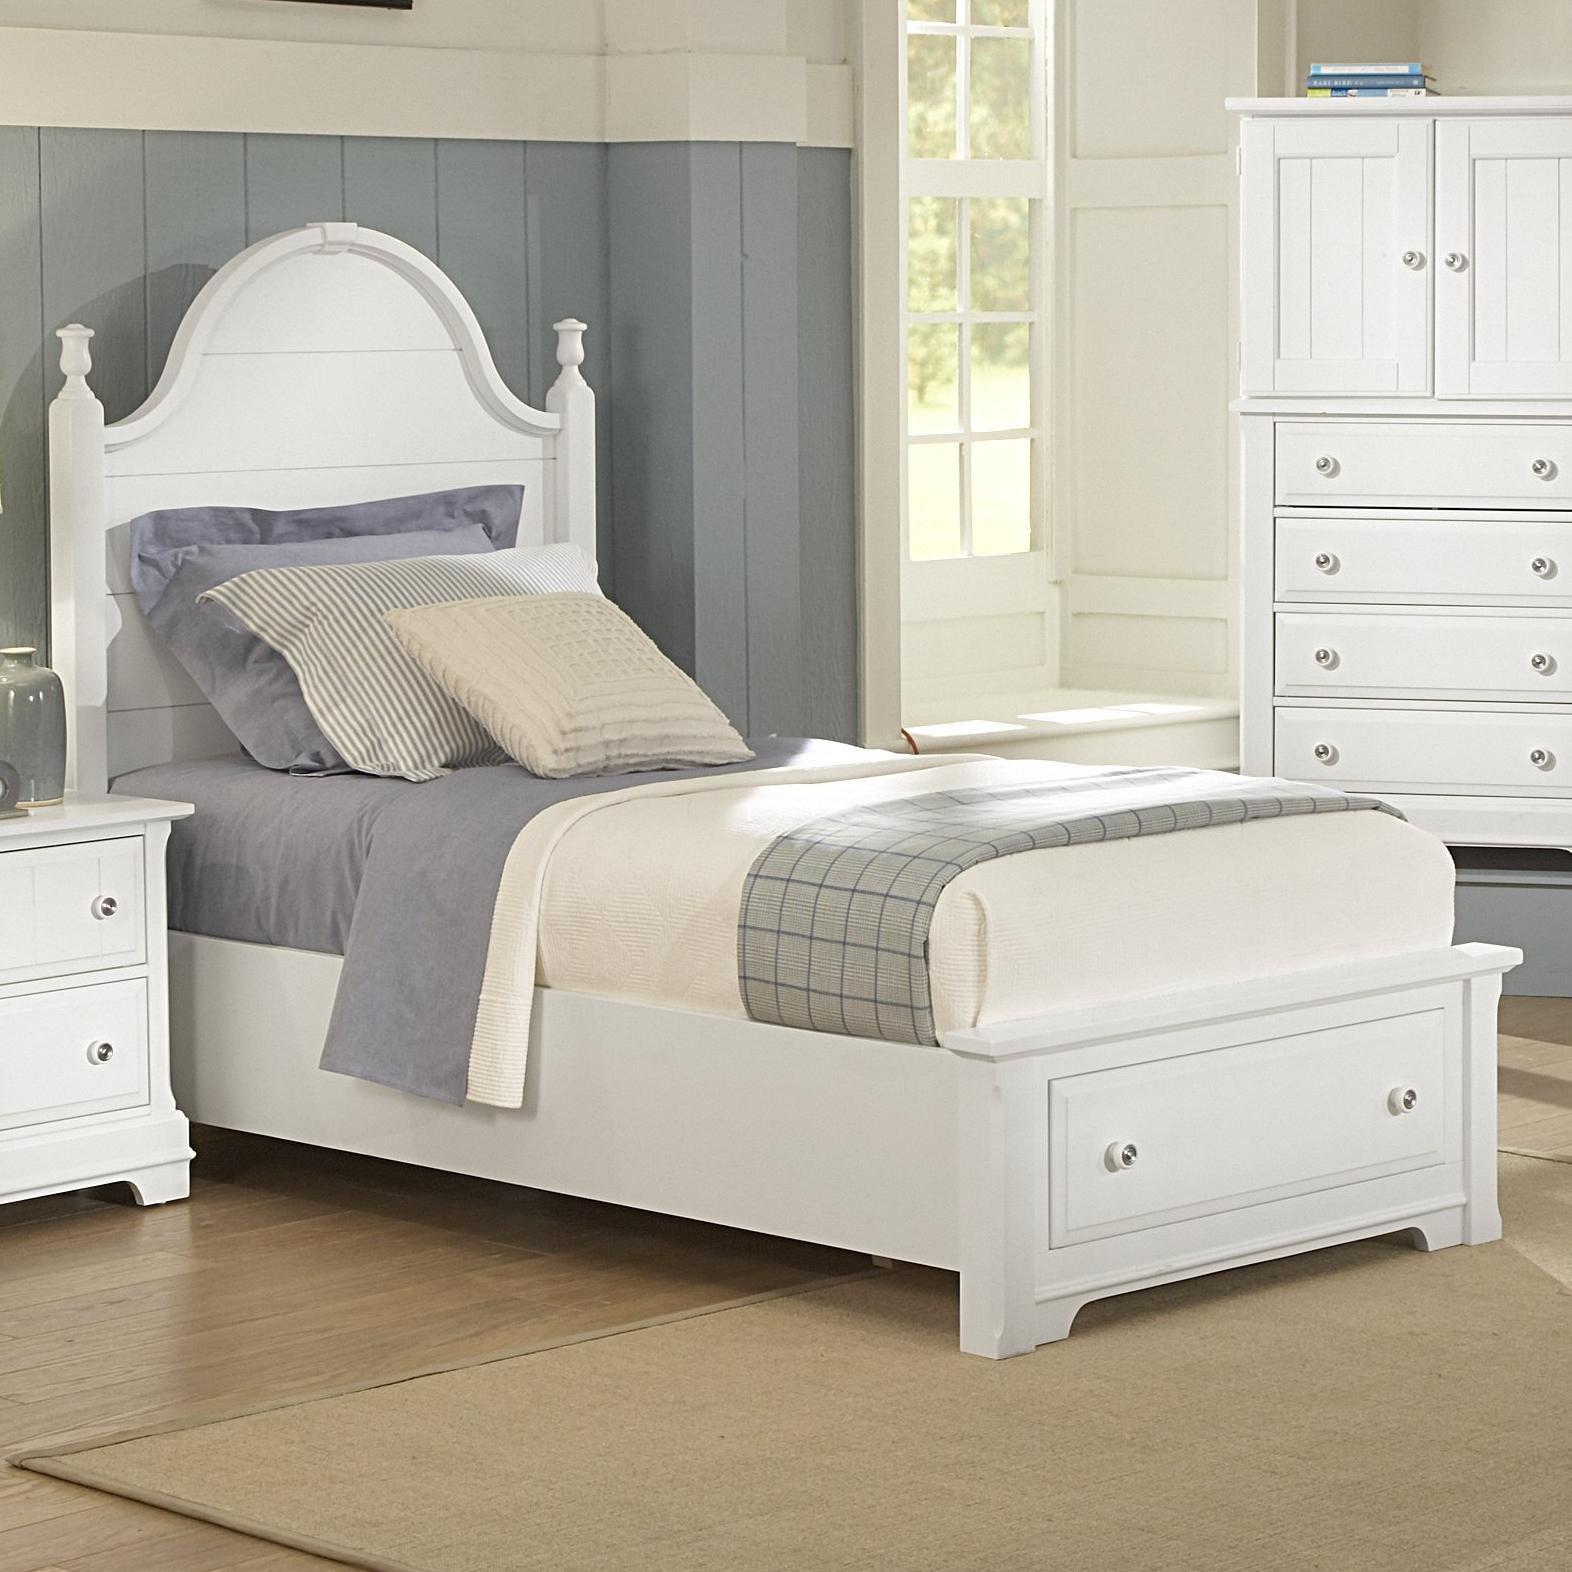 Vaughan Bassett Cottage King Panel Storage Bed - Item Number: BB24-668+066B+666T+502